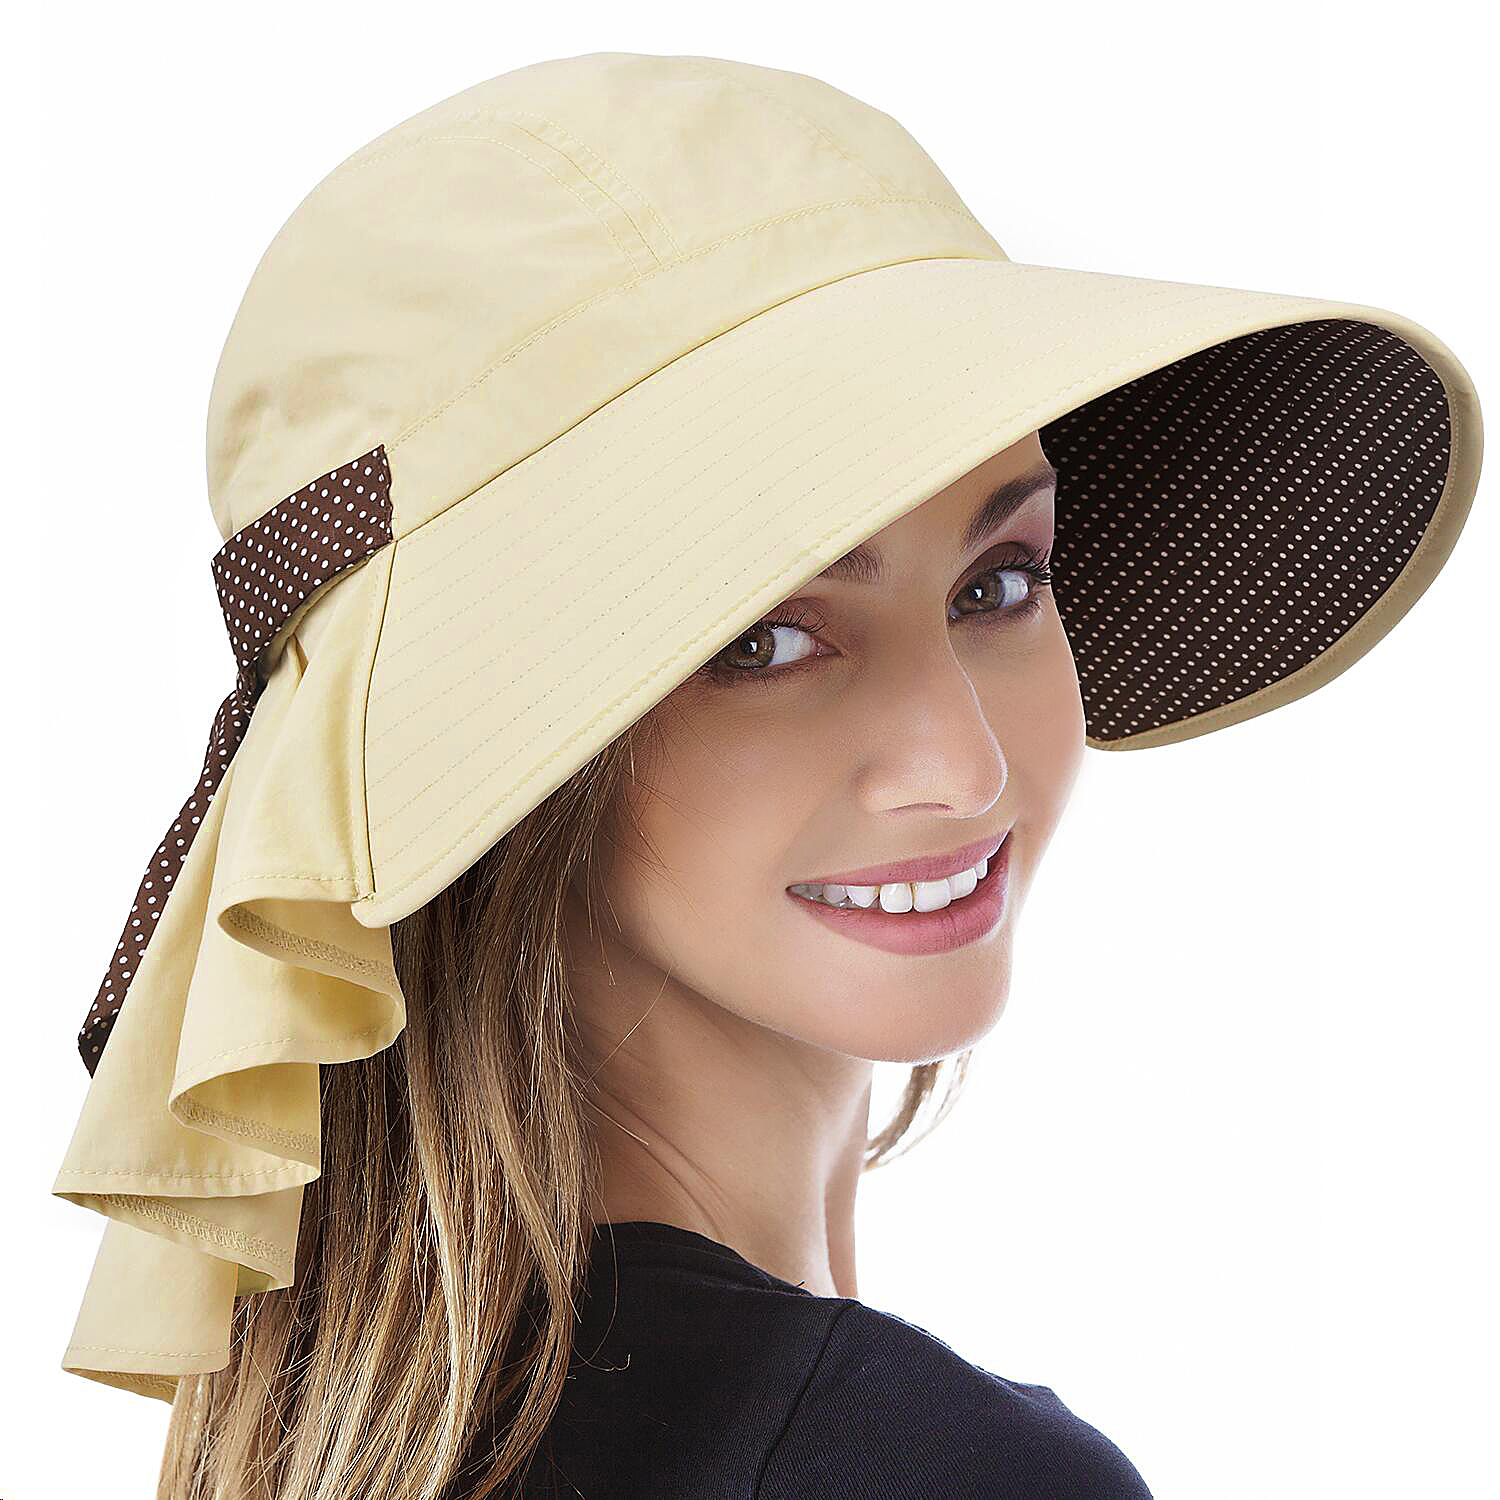 Foldable Fishing Cap Sun Hat with Sun Protection Face Neck Flap for Women Girls